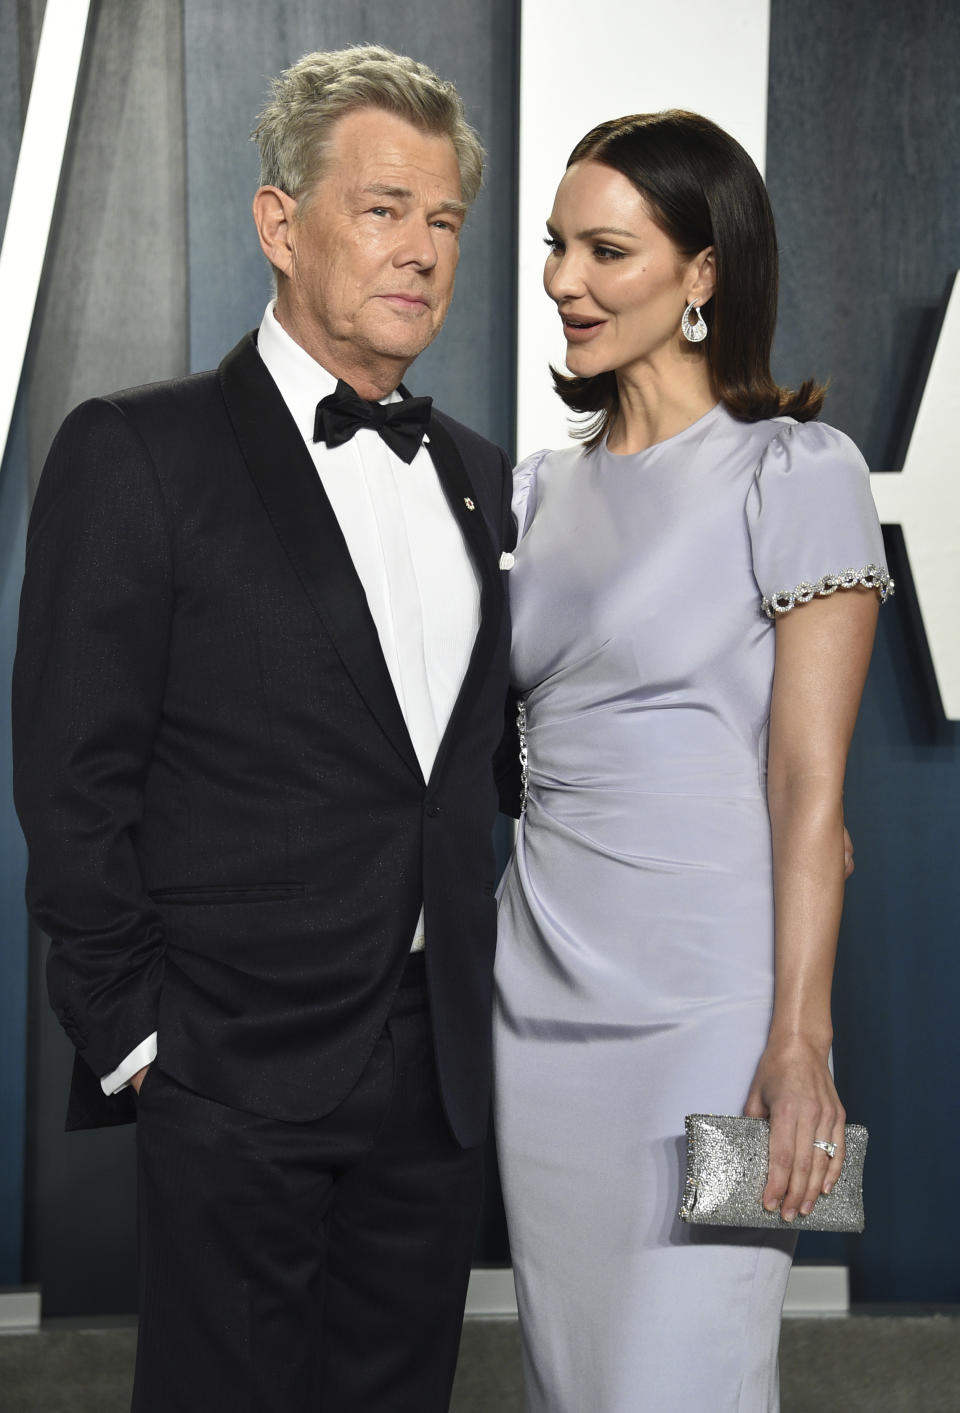 David Foster Opens Up About Ben Vereen Car Accident Kat Mcphee Marriage And Superstar Career